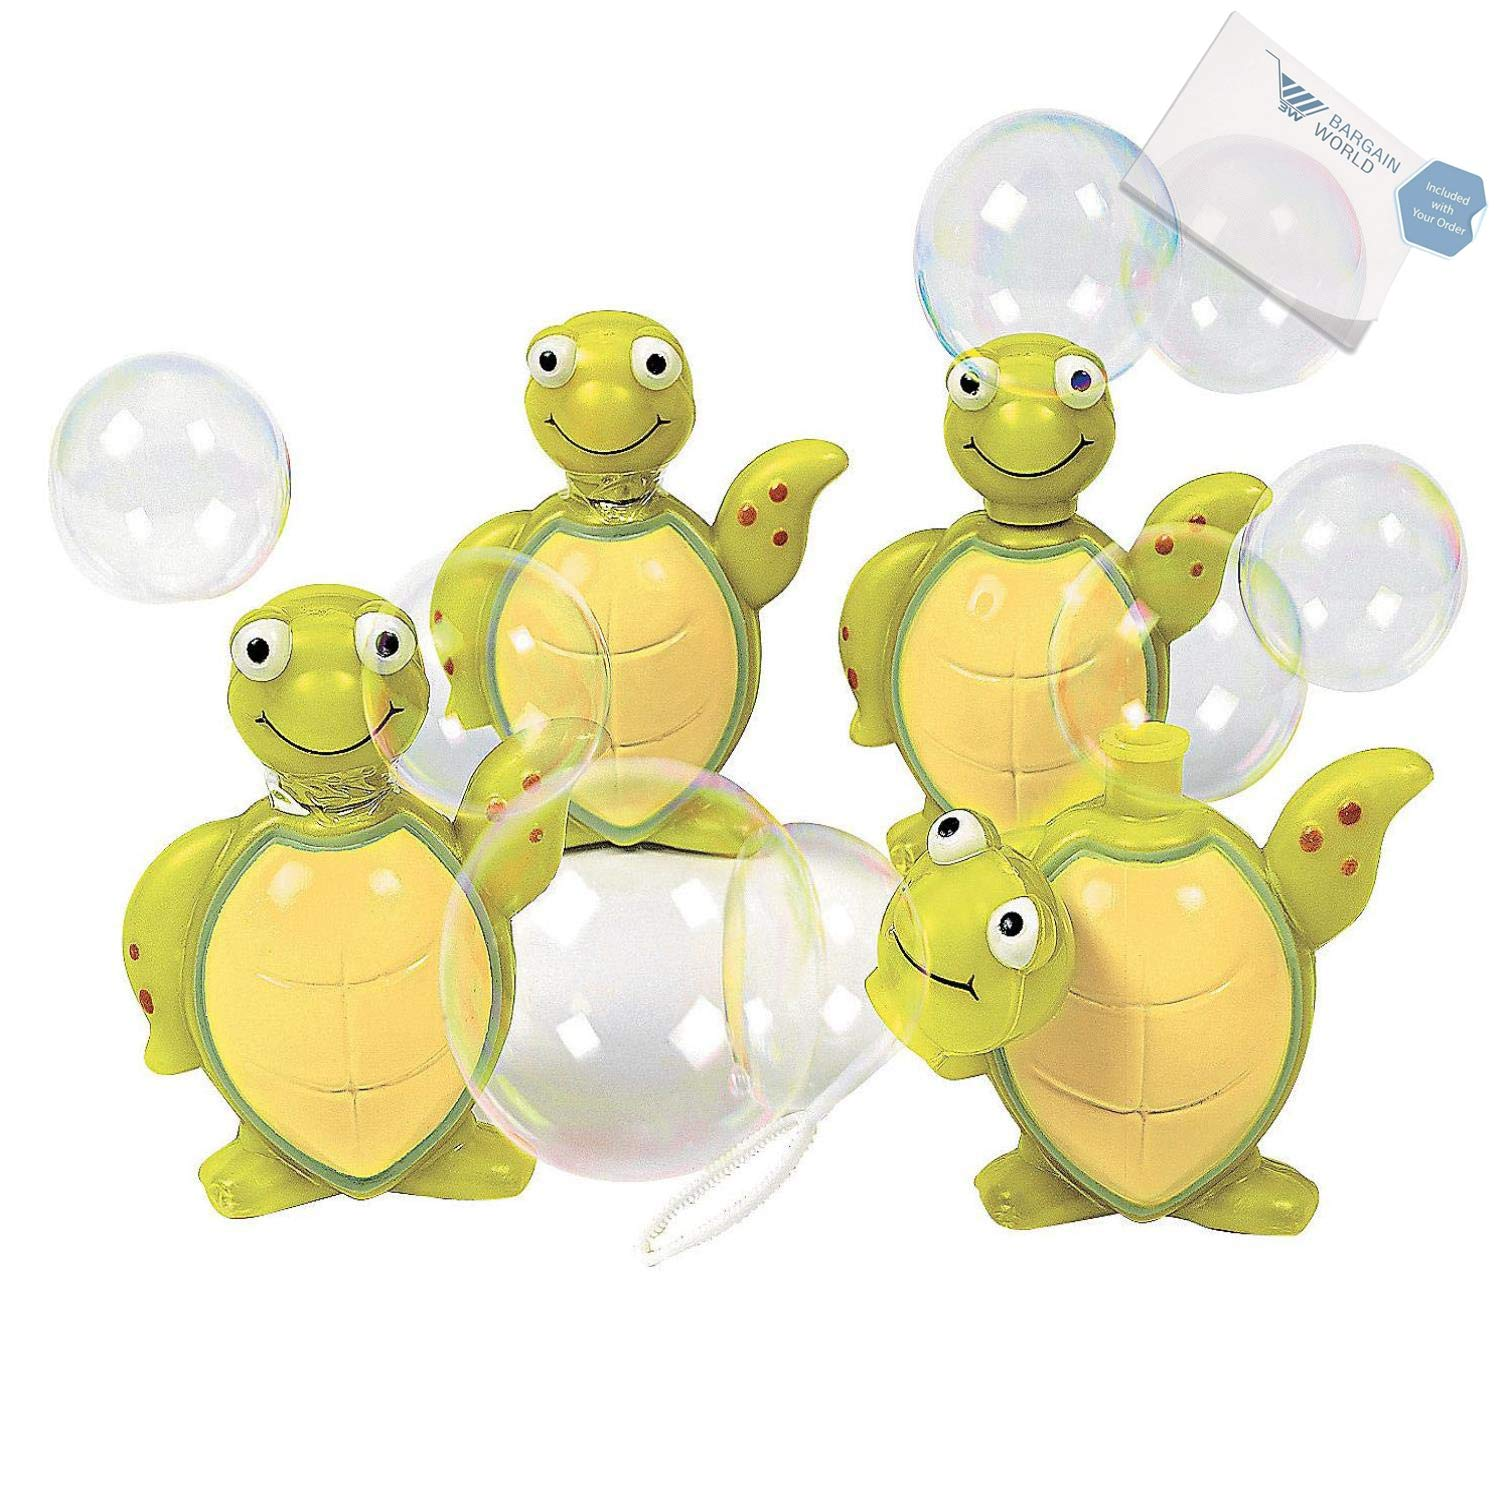 Bargain World Plastic Sea Turtle Bubble Bottles (With Sticky Notes) by Bargain World (Image #1)